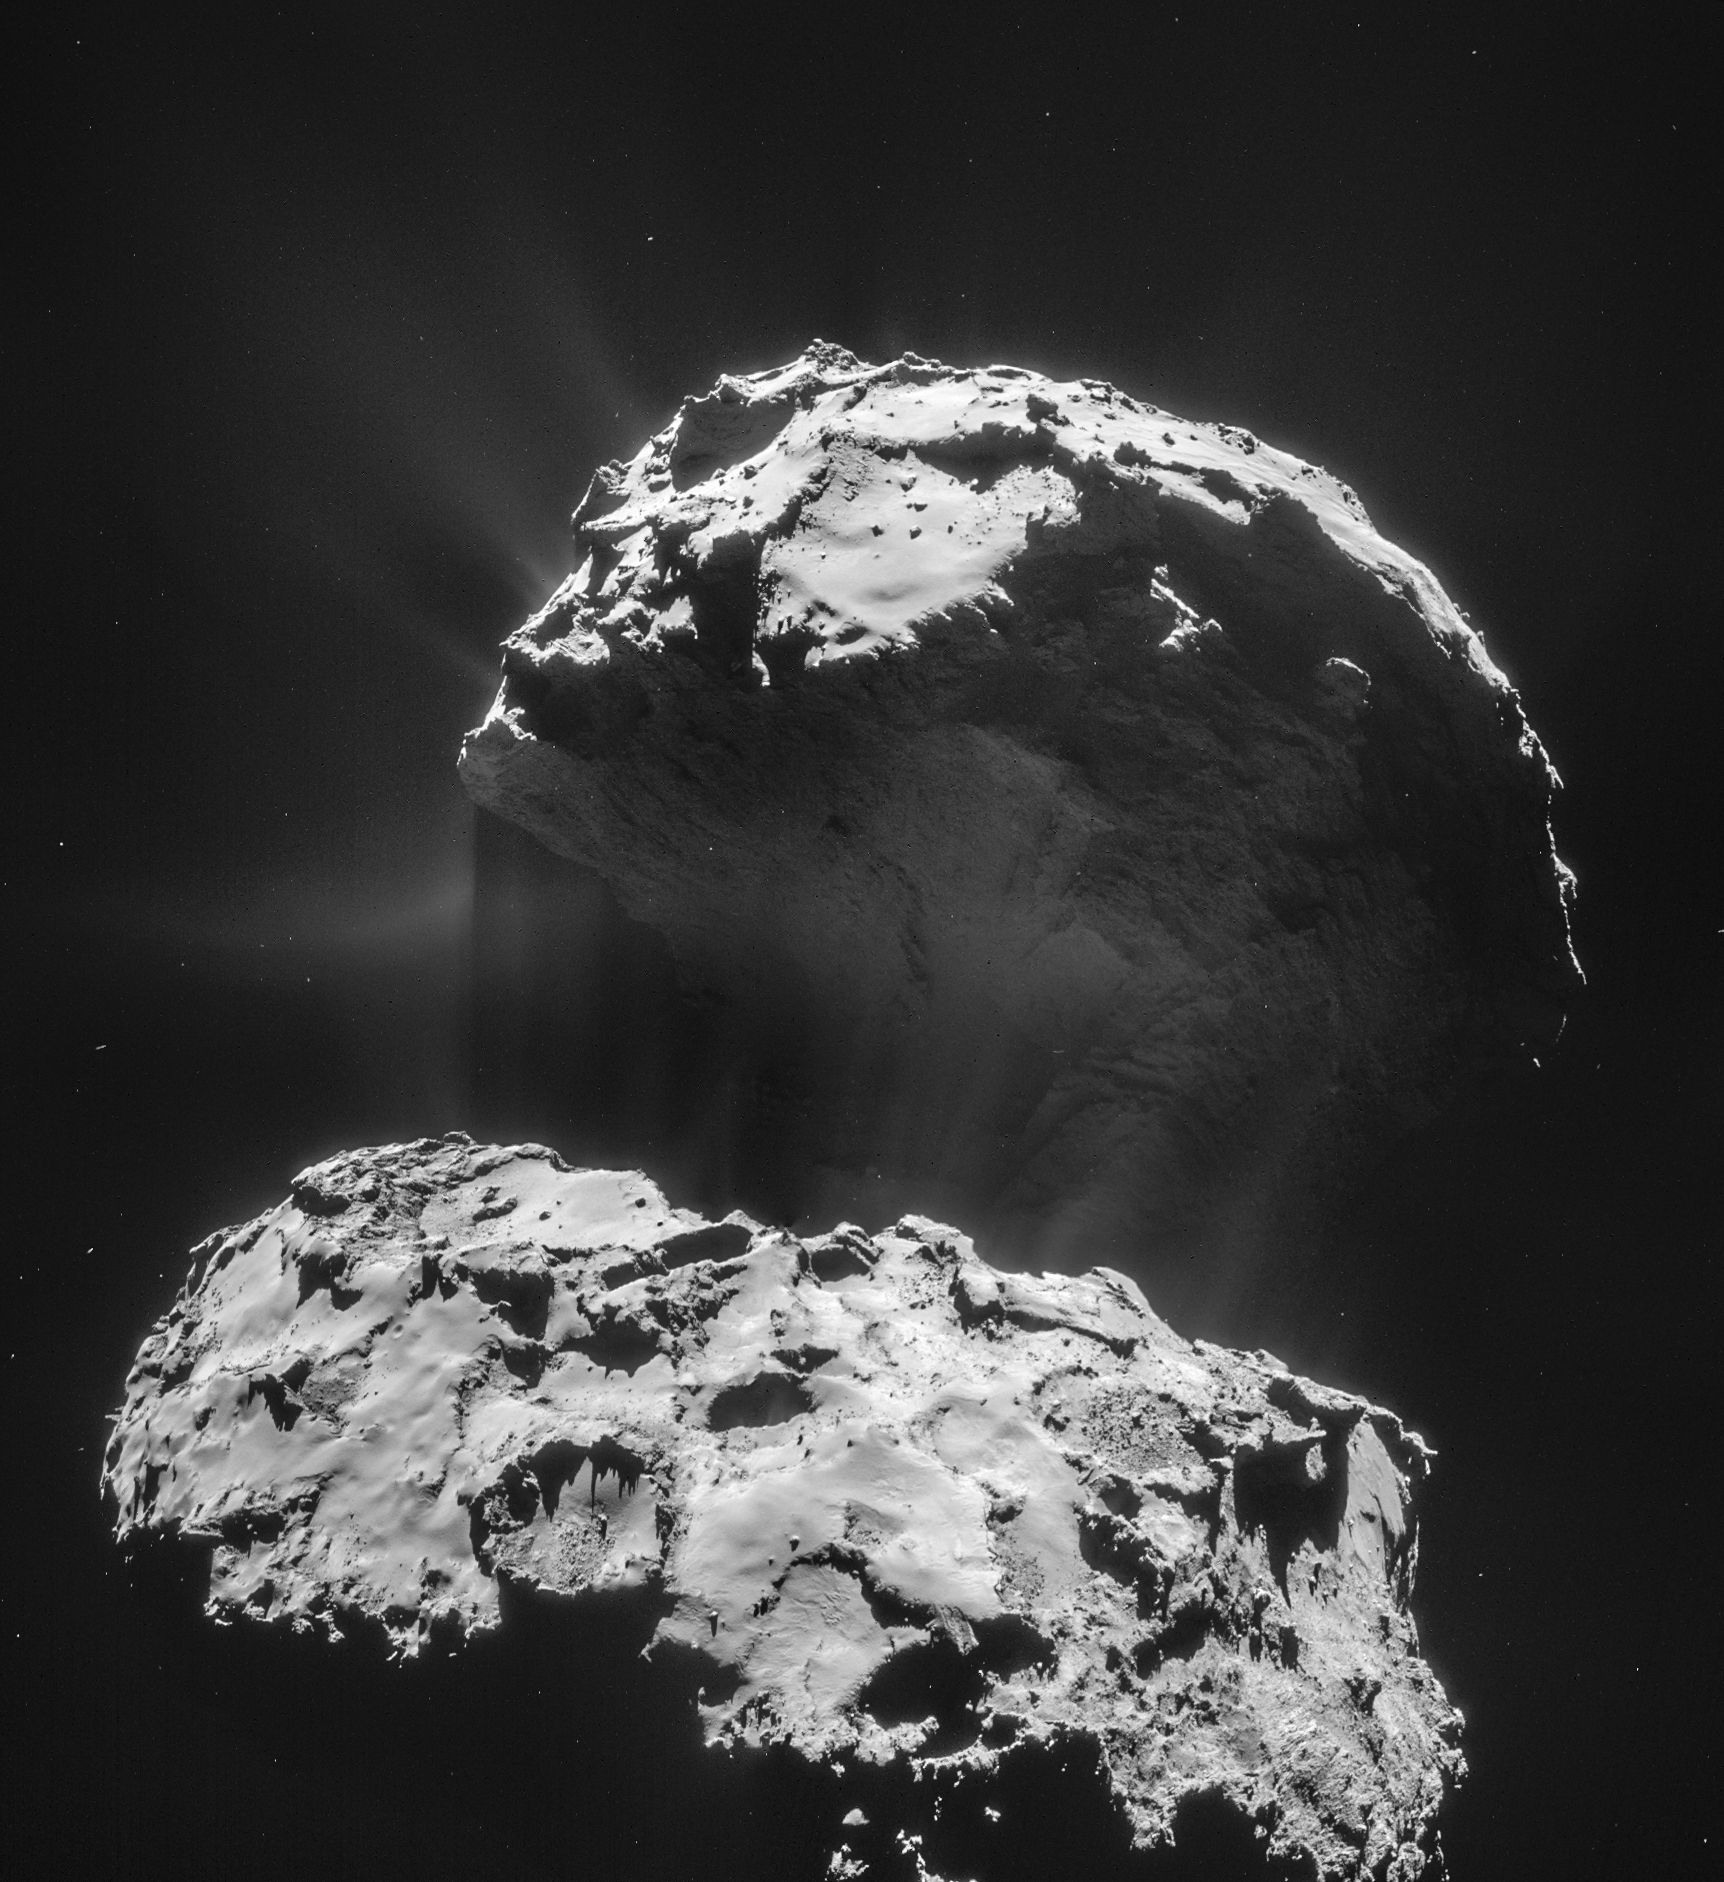 67P is truly an alien world, a 5 km-wide solar system body shaped by vaporizing ices and left tattered by its many trips around the Sun. (Credit ESA)